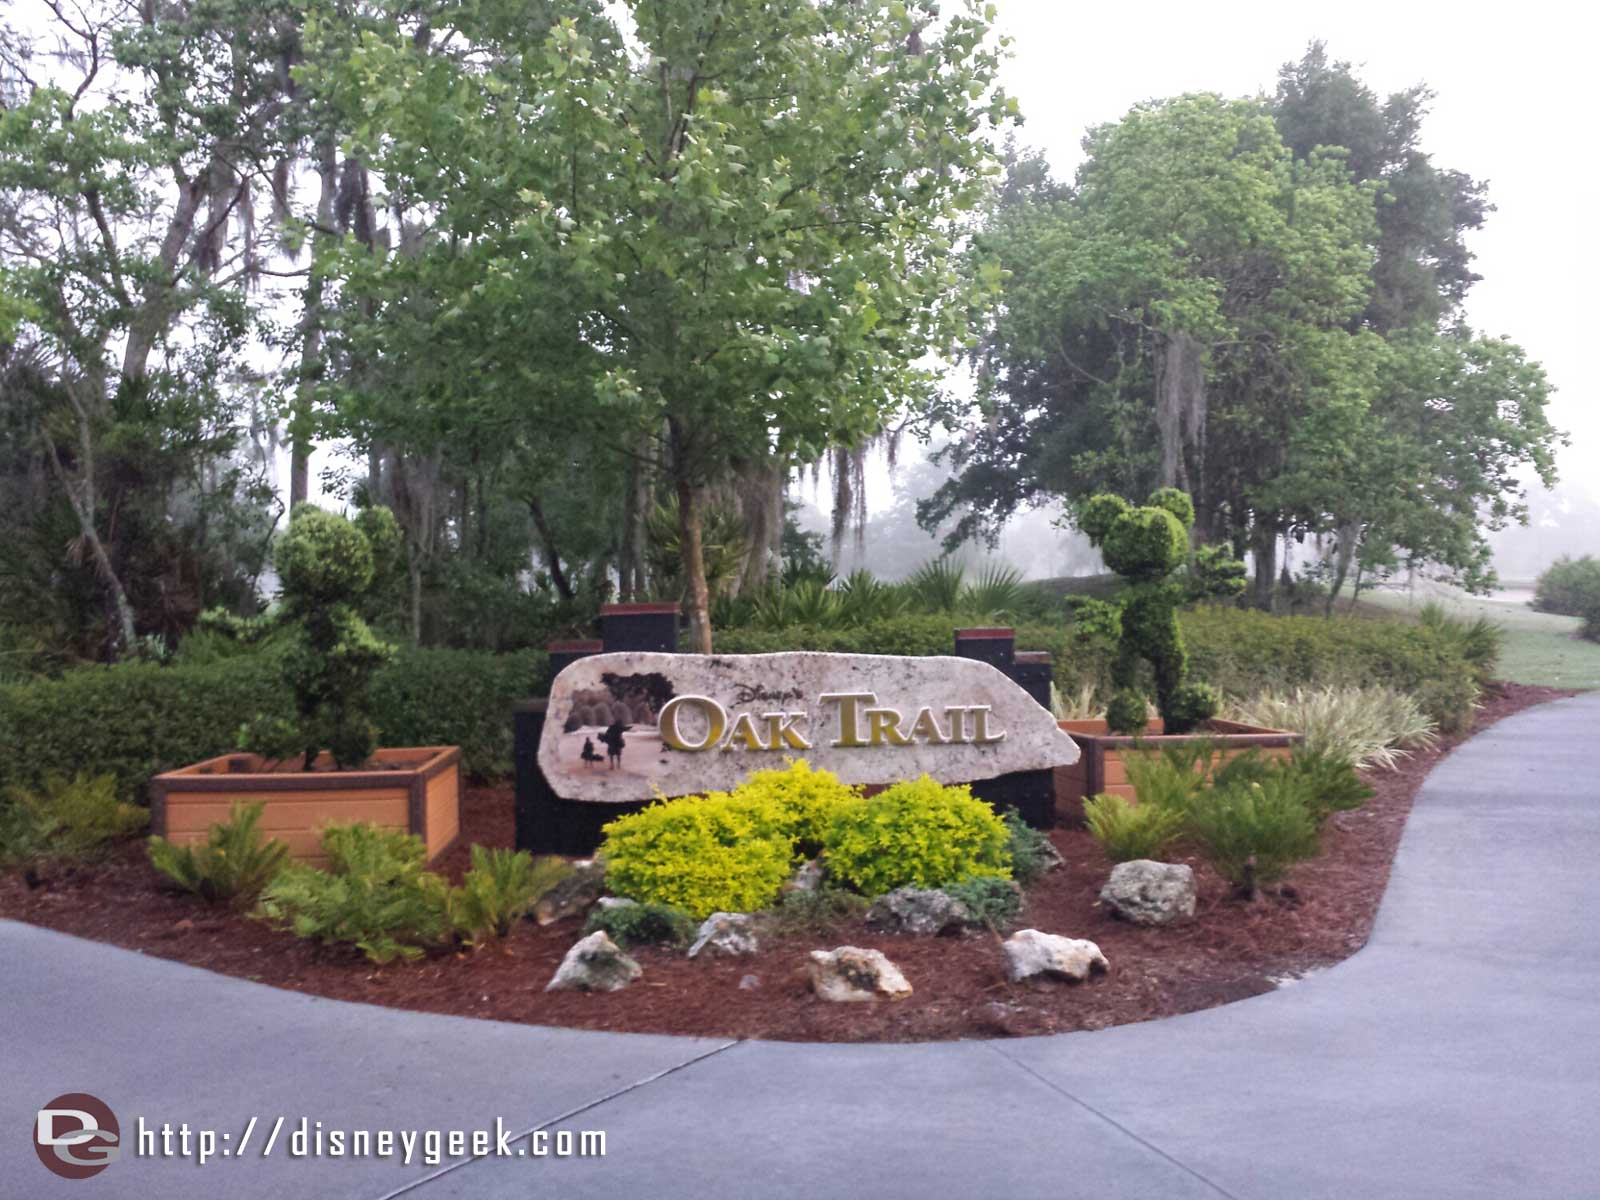 The entrance to Disney's Oak Trail course